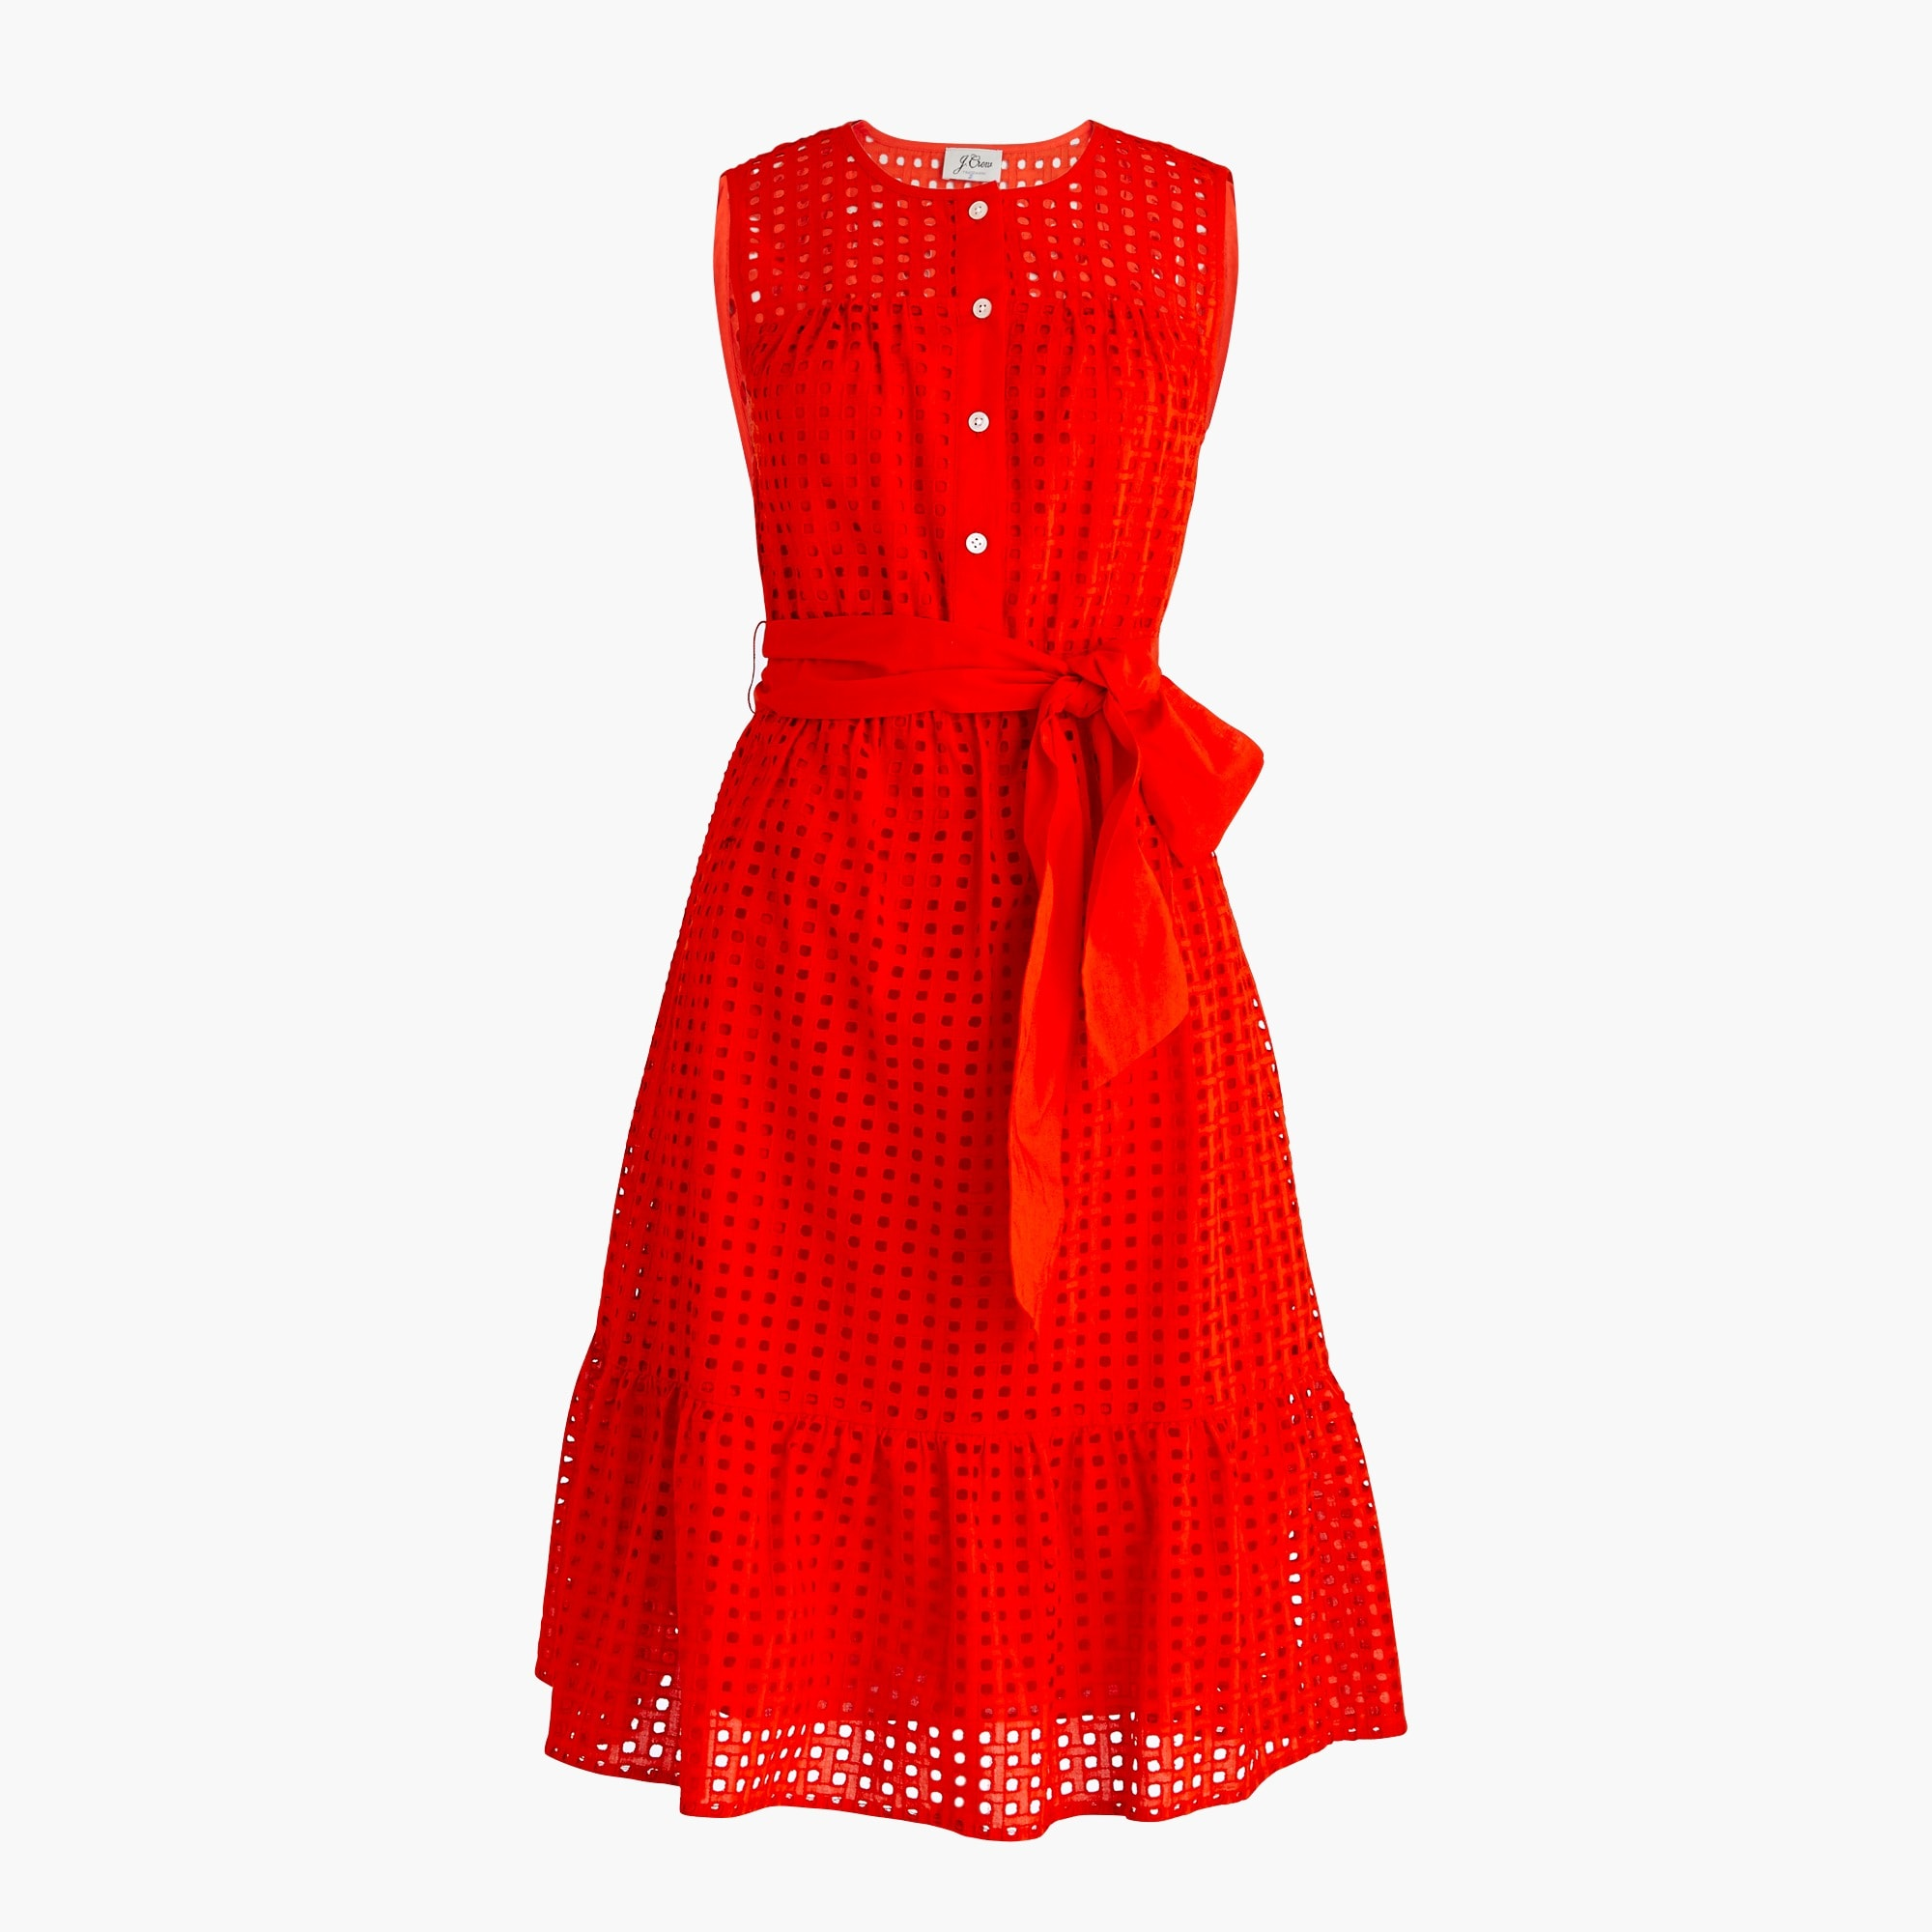 Image 1 for Petite all-over eyelet dress